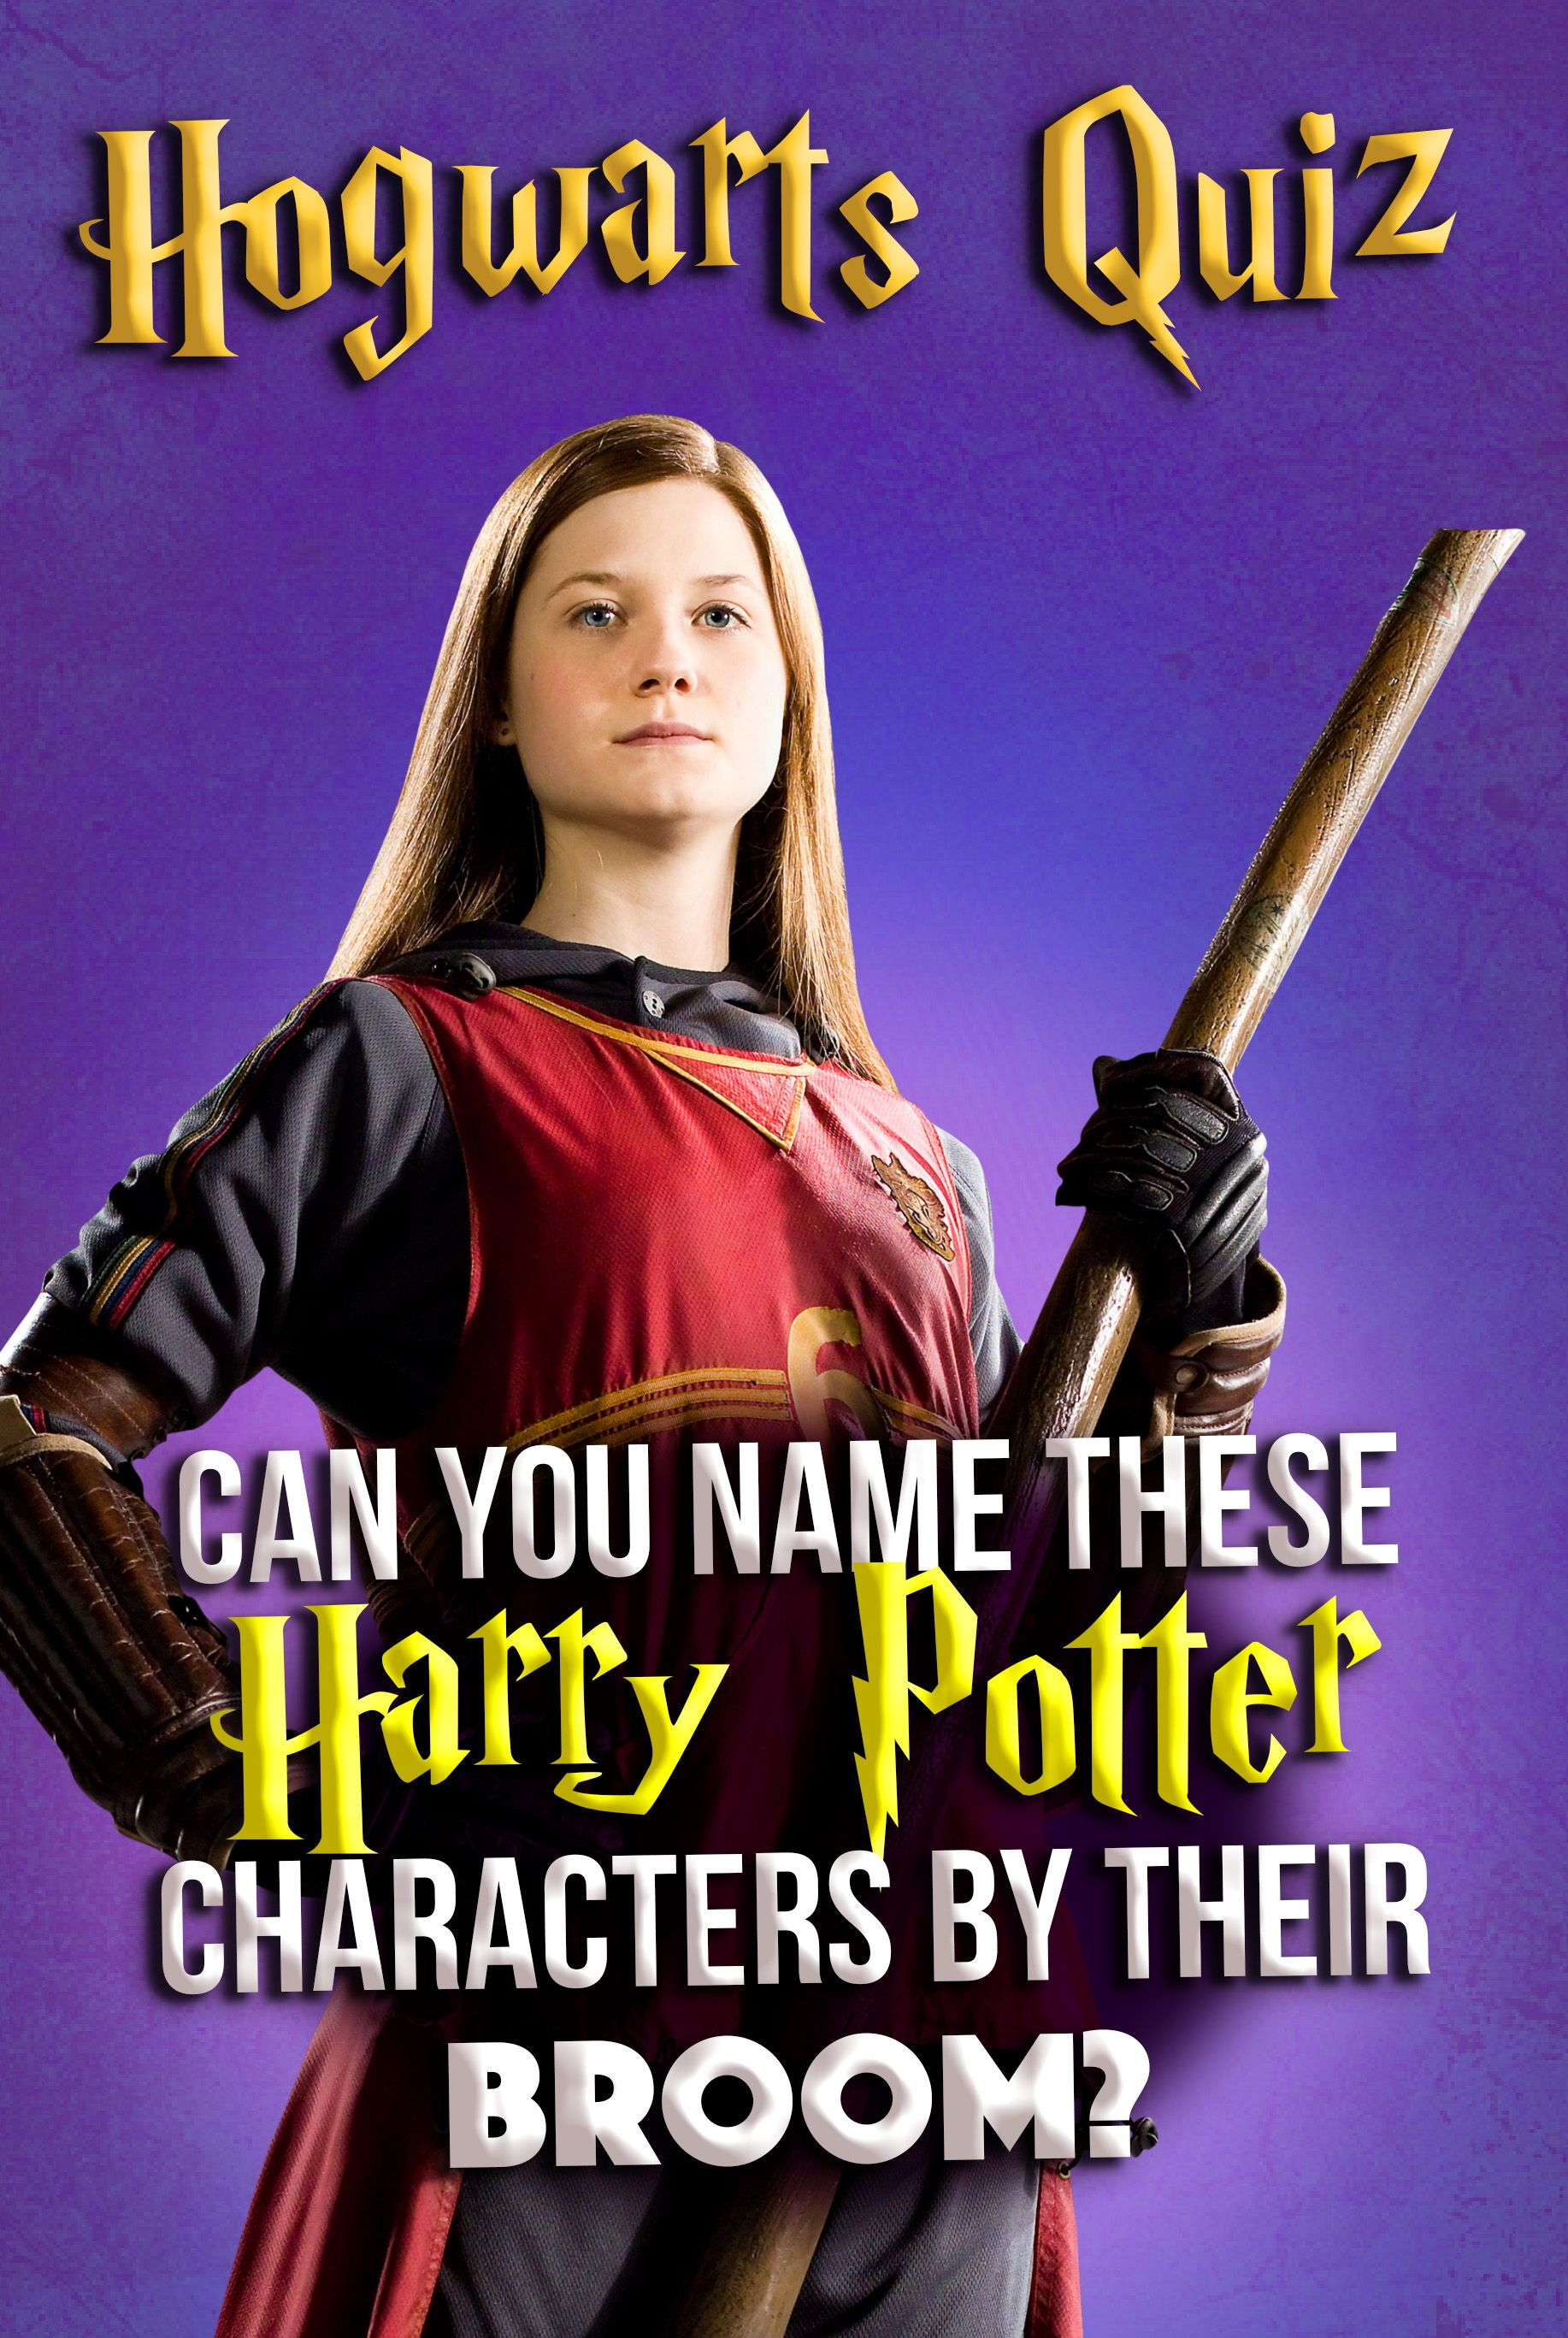 Hogwarts Quiz Can You Name These Harry Potter Characters By Their Broom